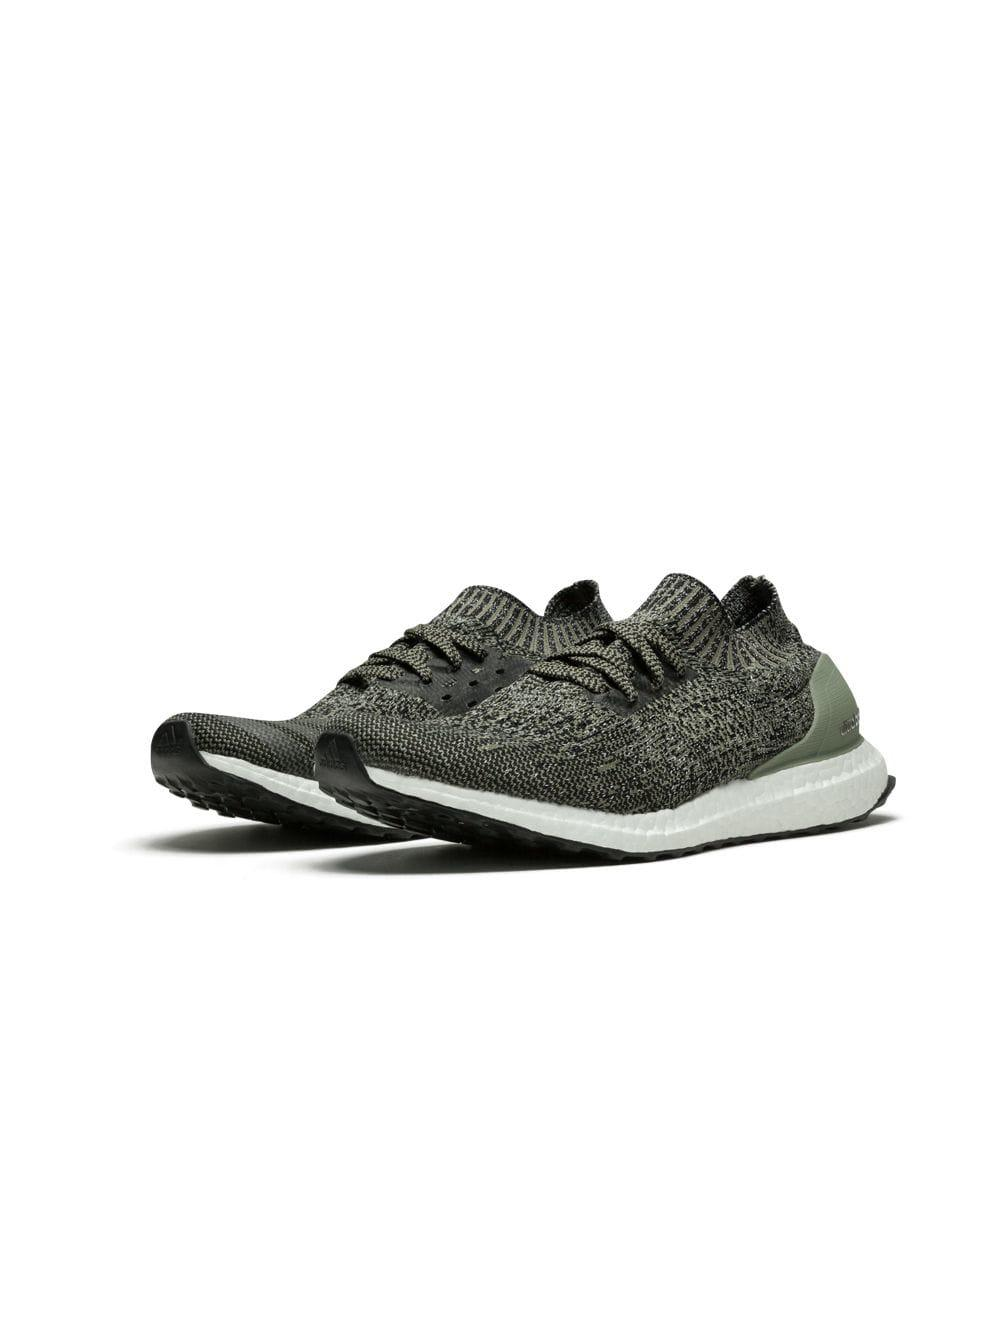 factory price cd889 9926e adidas Ultraboost Uncaged Sneakers in Green for Men - Lyst